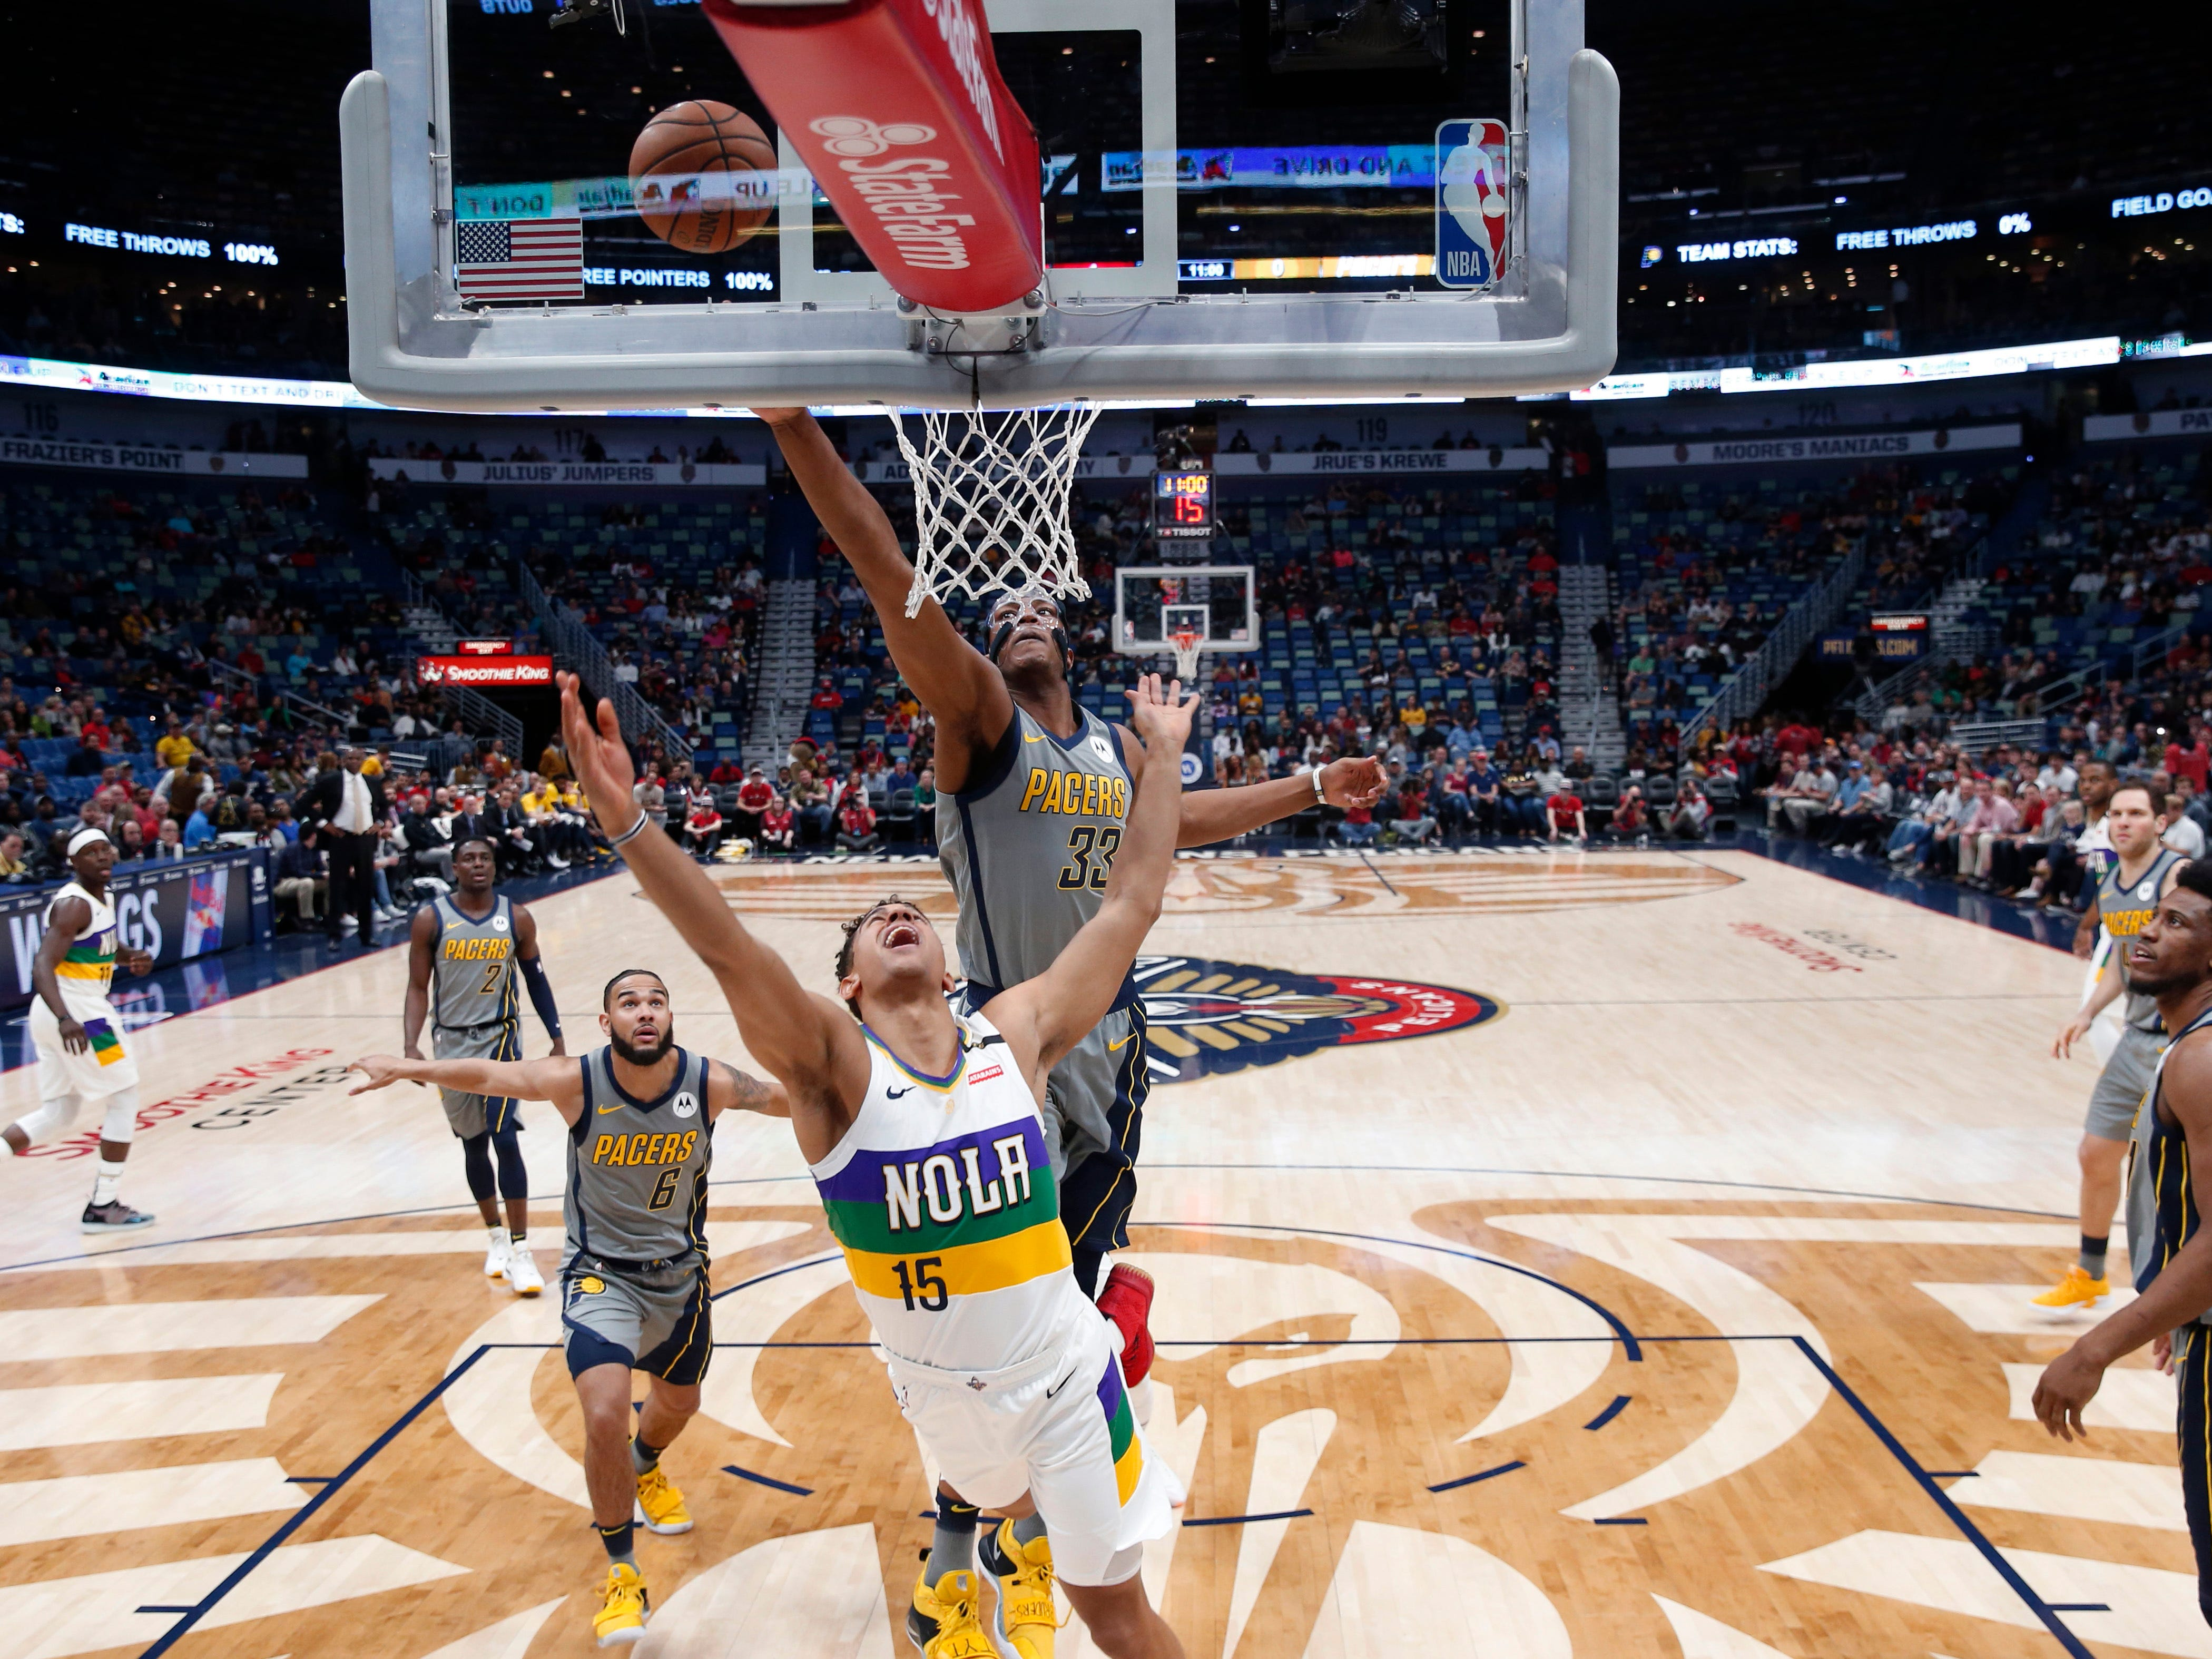 Indiana Pacers center Myles Turner (33) tries to block a shot by New Orleans Pelicans guard Frank Jackson (15) in the first half of an NBA basketball game in New Orleans, Monday, Feb. 4, 2019.